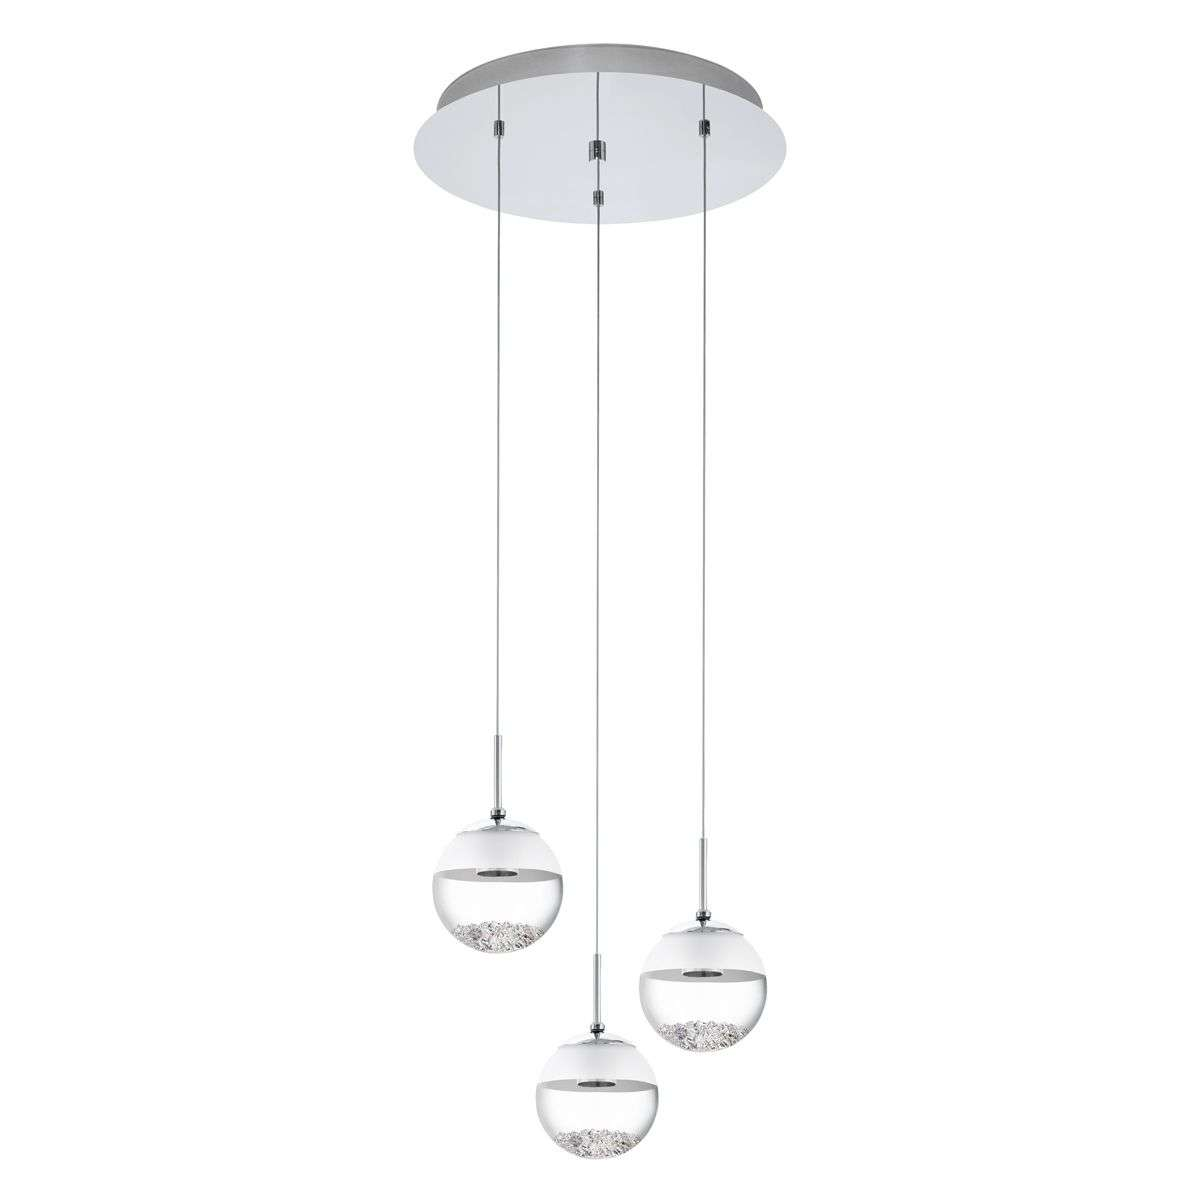 Montefio 3 Lamp Round LED Pendant With Crystal